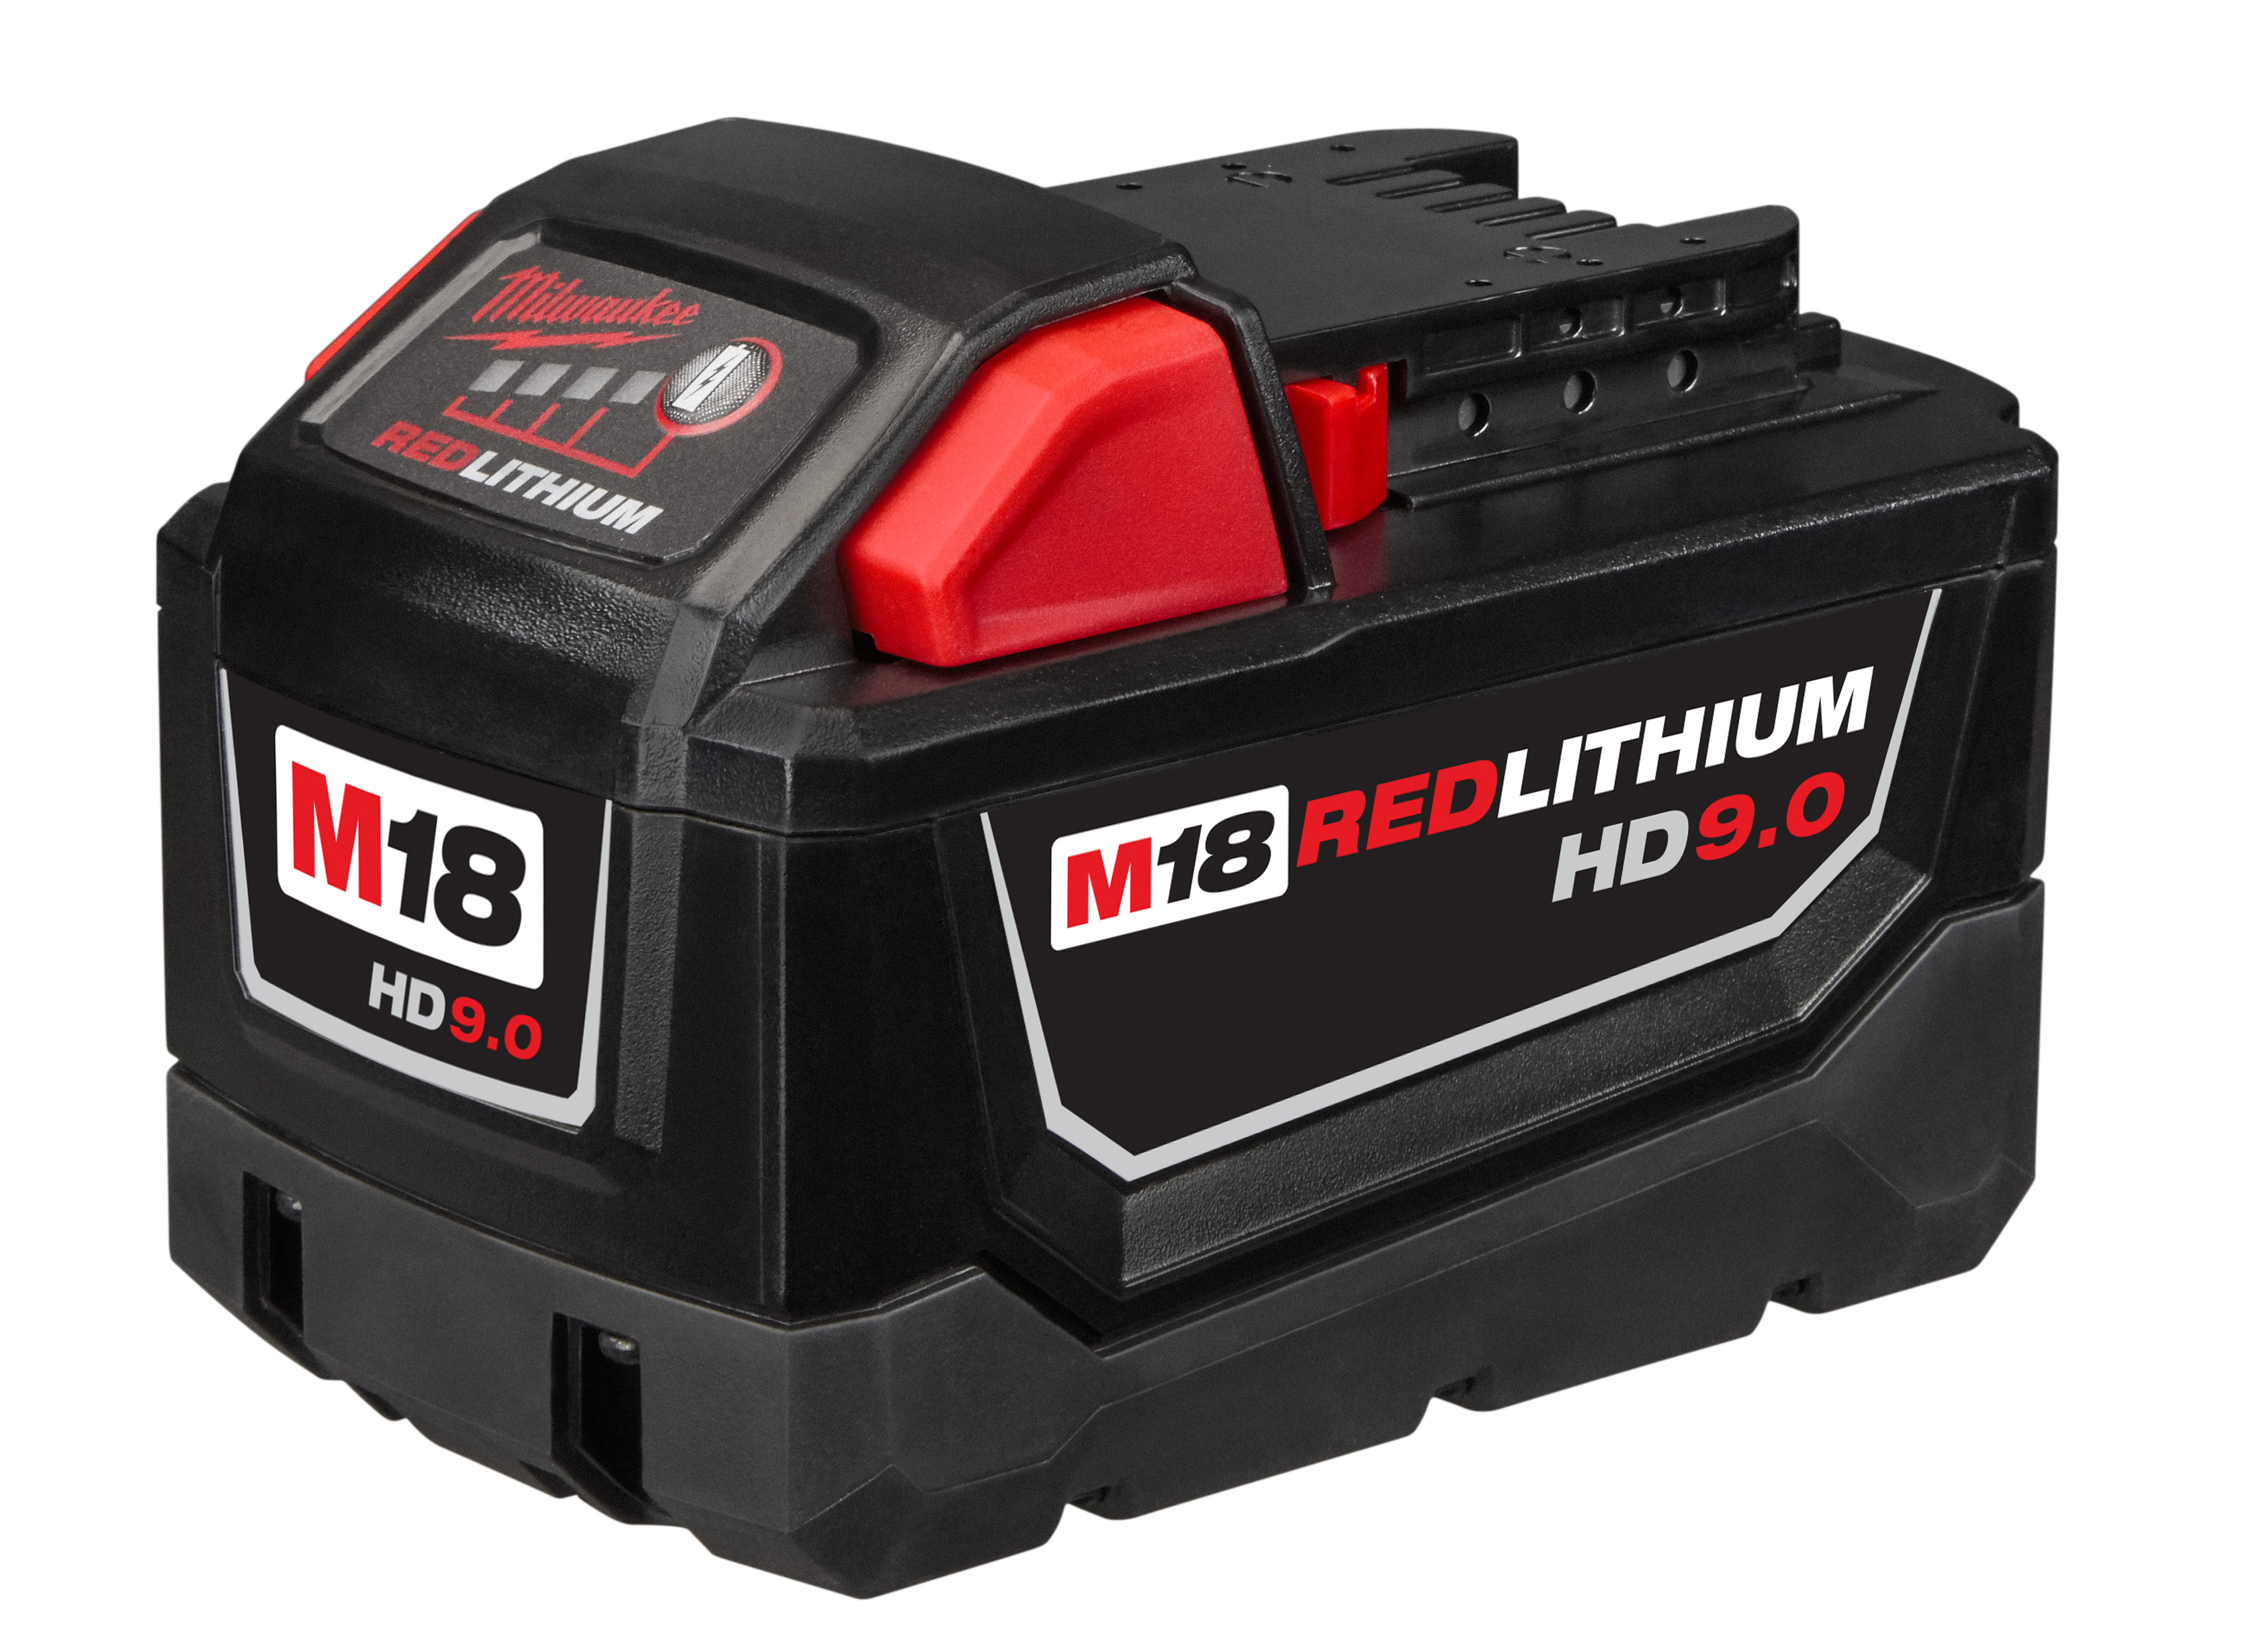 Milwaukee® M18™ REDLITHIUM™ 48-11-1890 HIGH DEMAND™ Cordless Battery Pack, 9 Ah Lithium-Ion Battery, 18 VDC Charge, For Use With Milwaukee® 18 V Cordless Tools